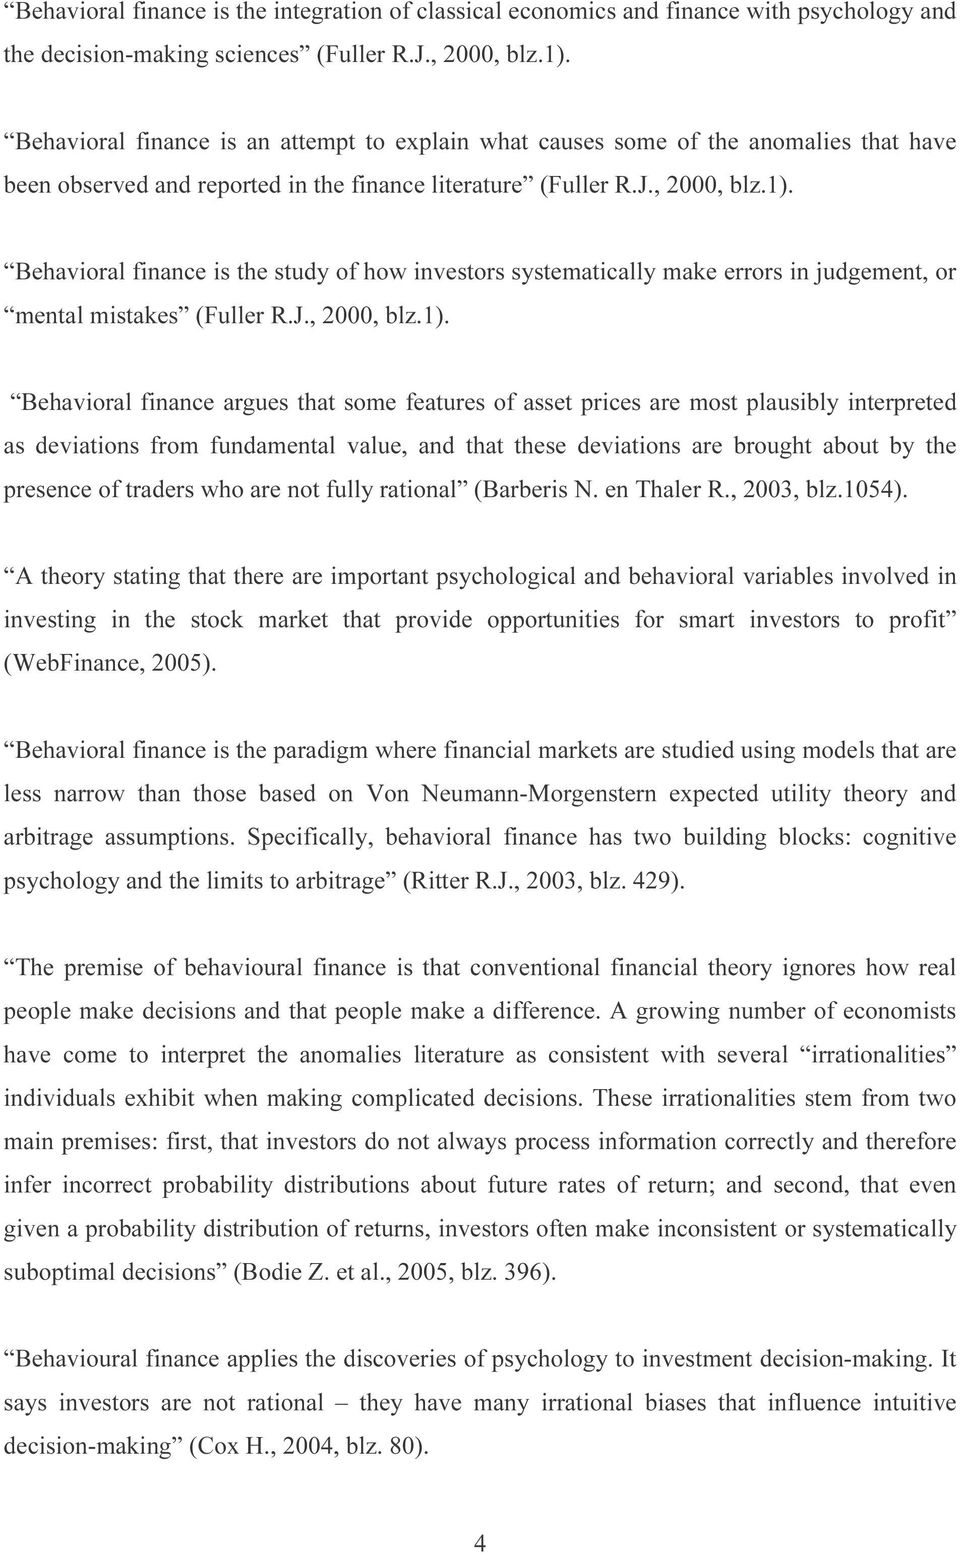 Behavioral finance is the study of how investors systematically make errors in judgement, or mental mistakes (Fuller R.J., 2000, blz.1).